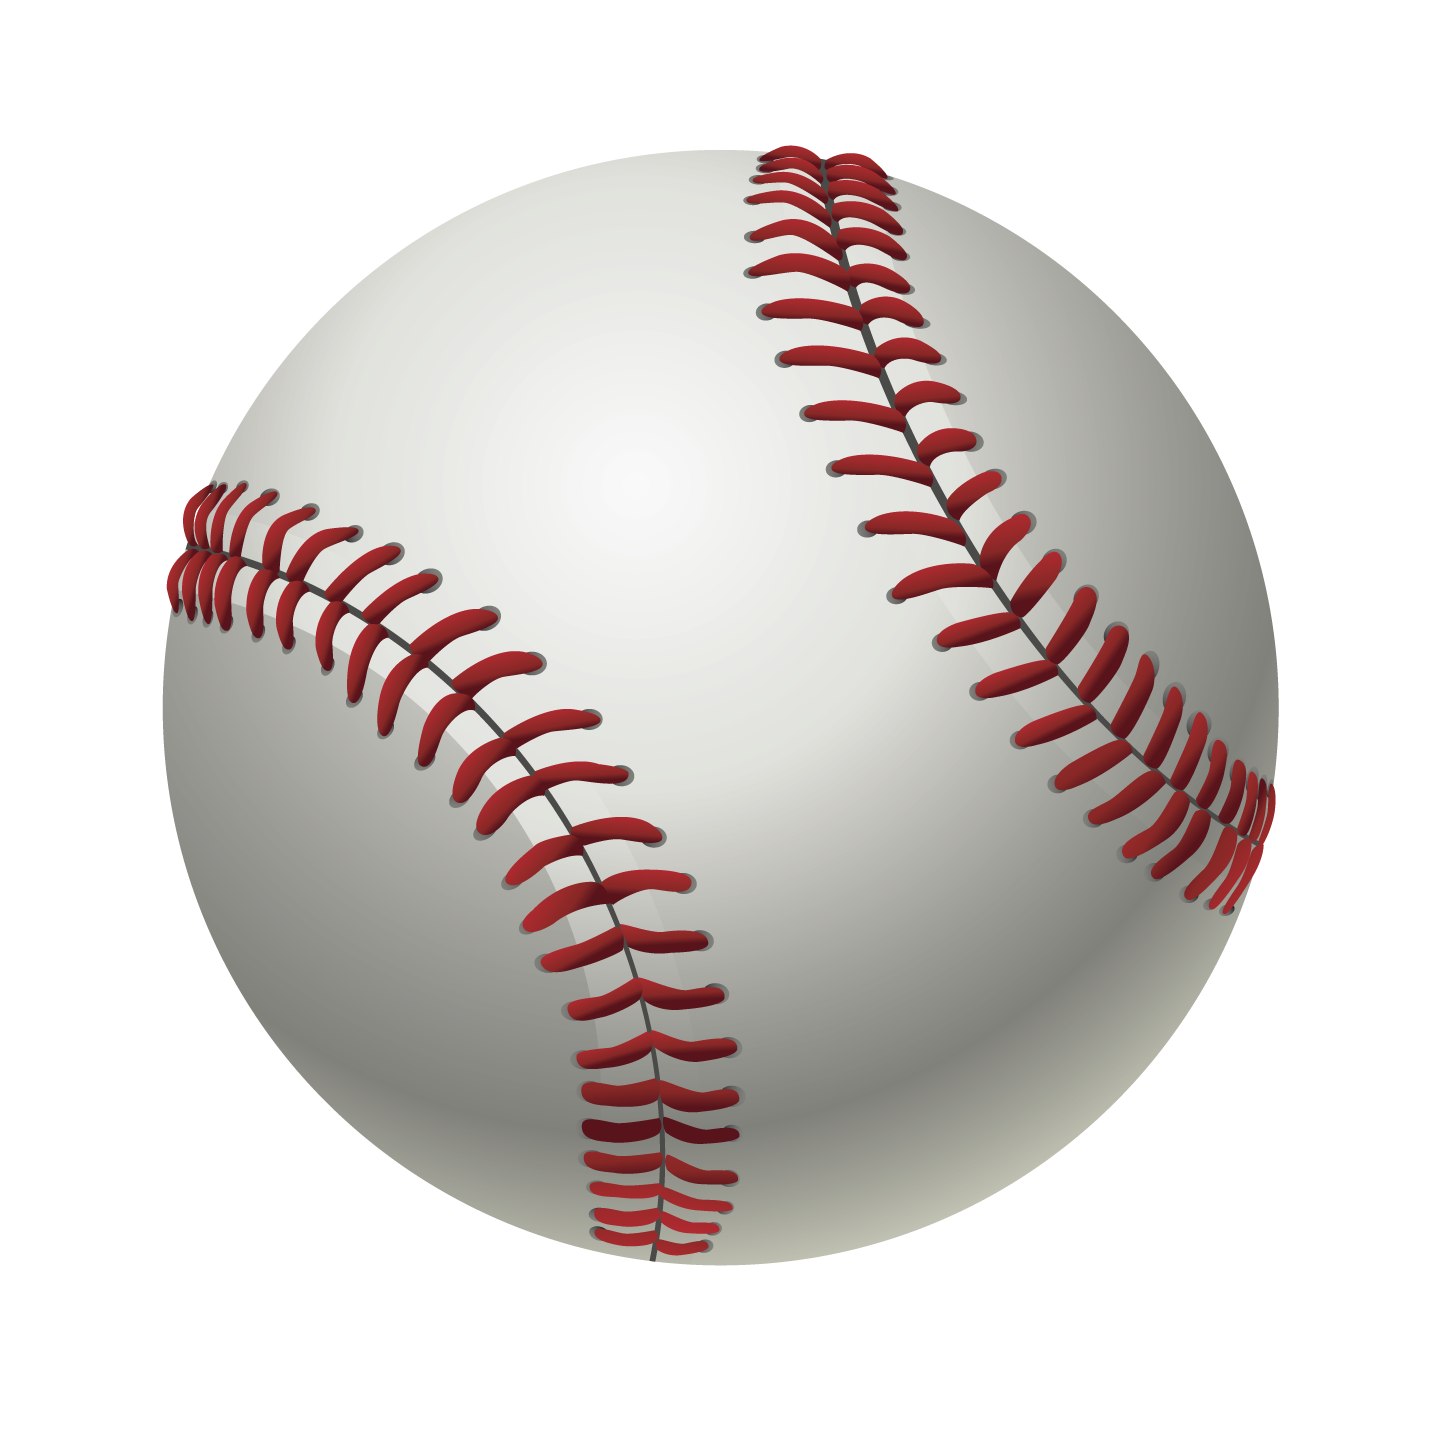 Free baseball clipart for commercial use banner transparent download Free Download Of Baseball Icon Clipart #35335 - Free Icons and PNG ... banner transparent download